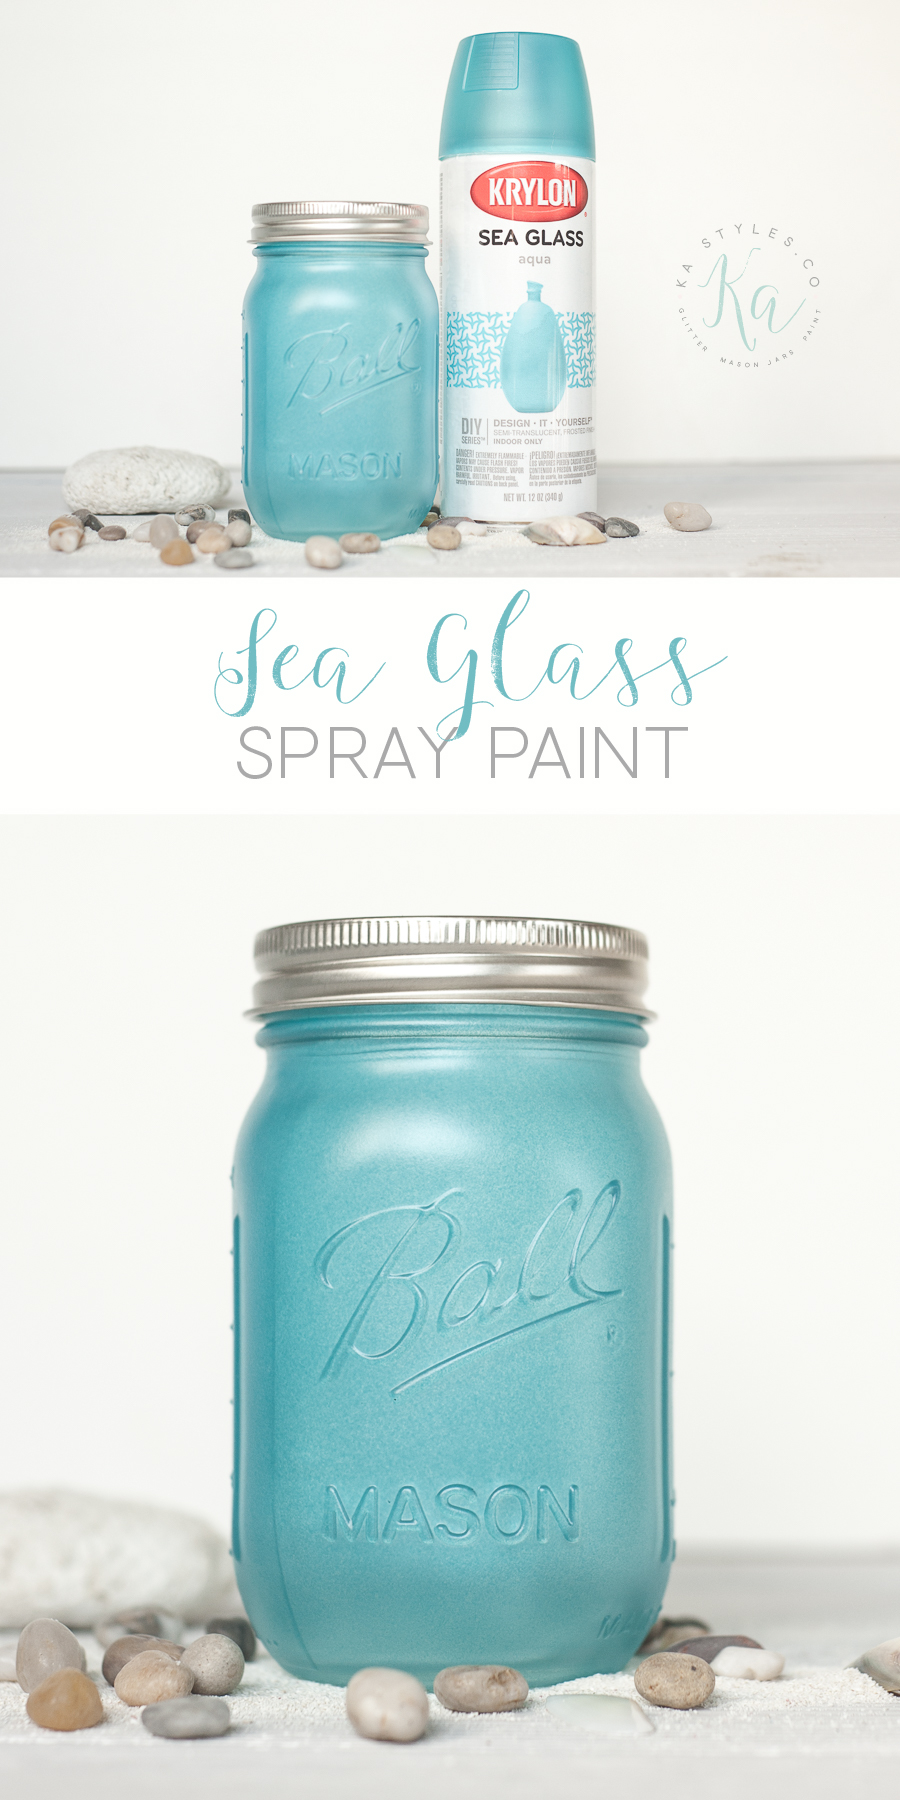 Krylon Sea Glass spray paint.